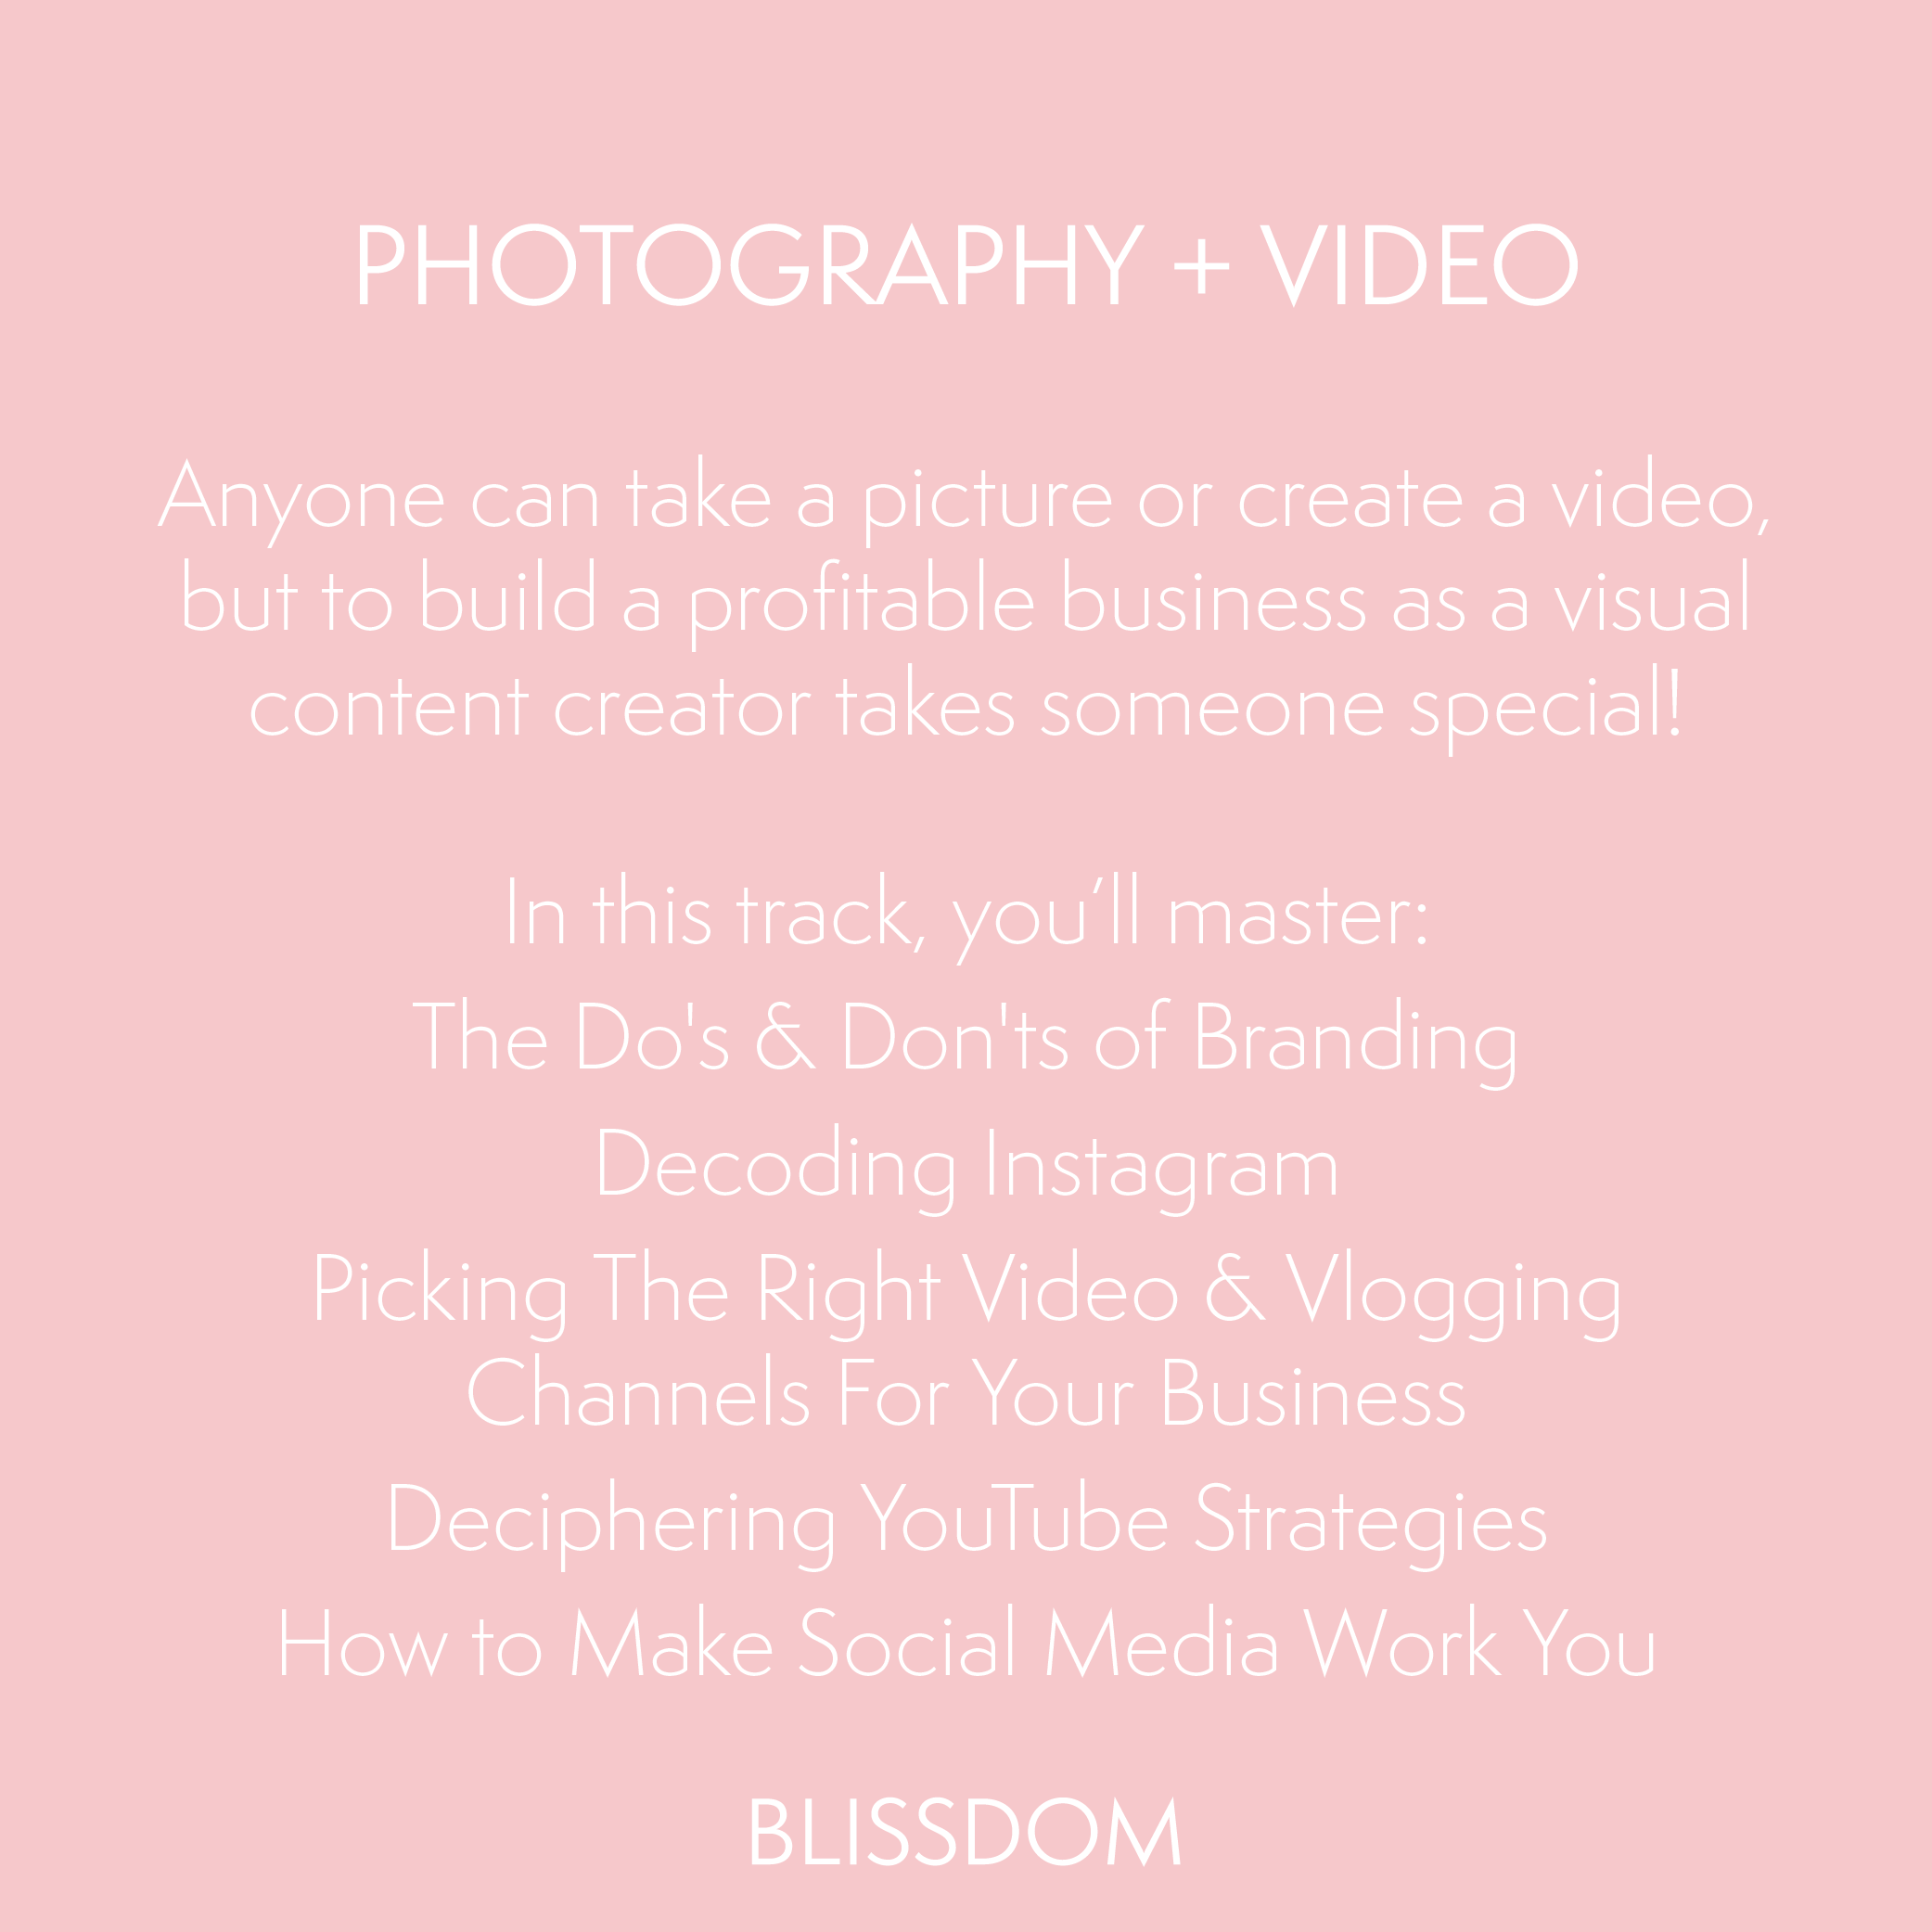 Photography-Video-Blissdom-Track.png